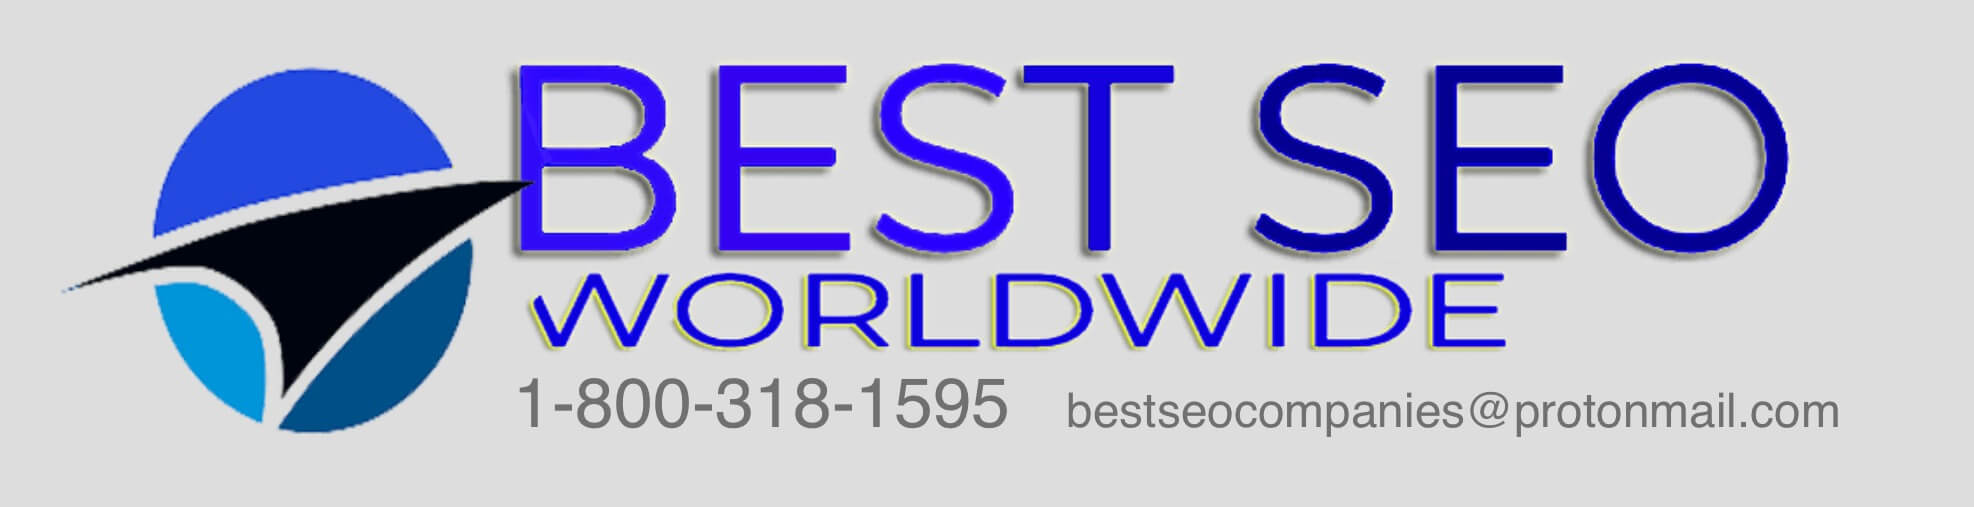 SEO & Web Design Company, Best SEO Company in the World- Best SEO Worldwide